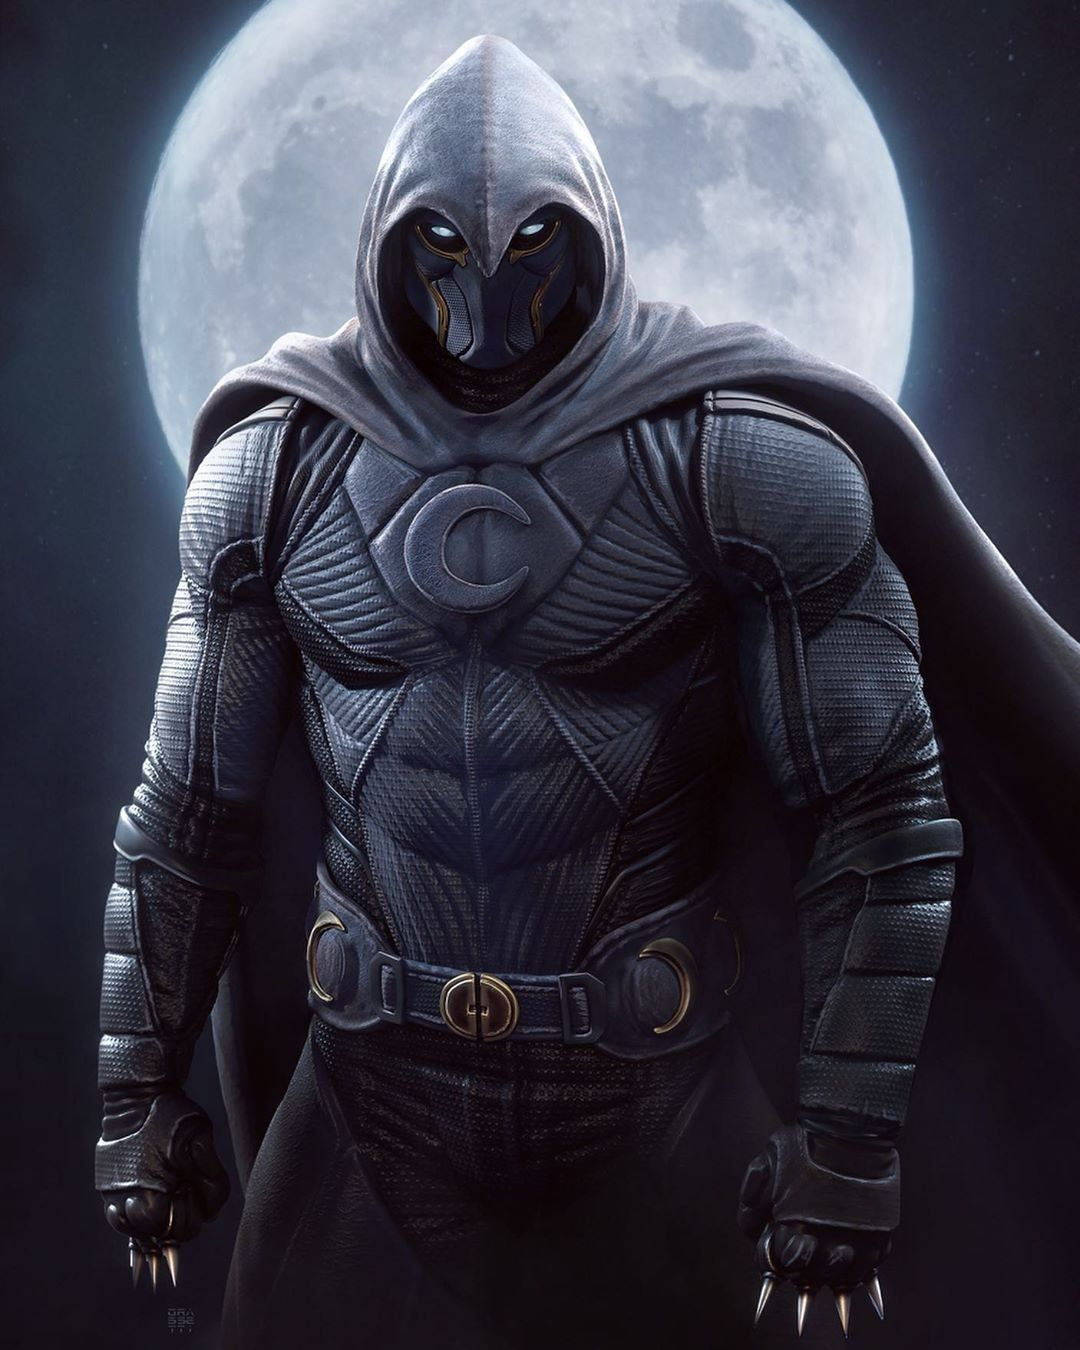 Marc spector a. K. A moon knight ( when there's a moon bad rises. for bad  guys that is) a costume… | Marvel comics art, Marvel moon knight, Marvel  comics wallpaper